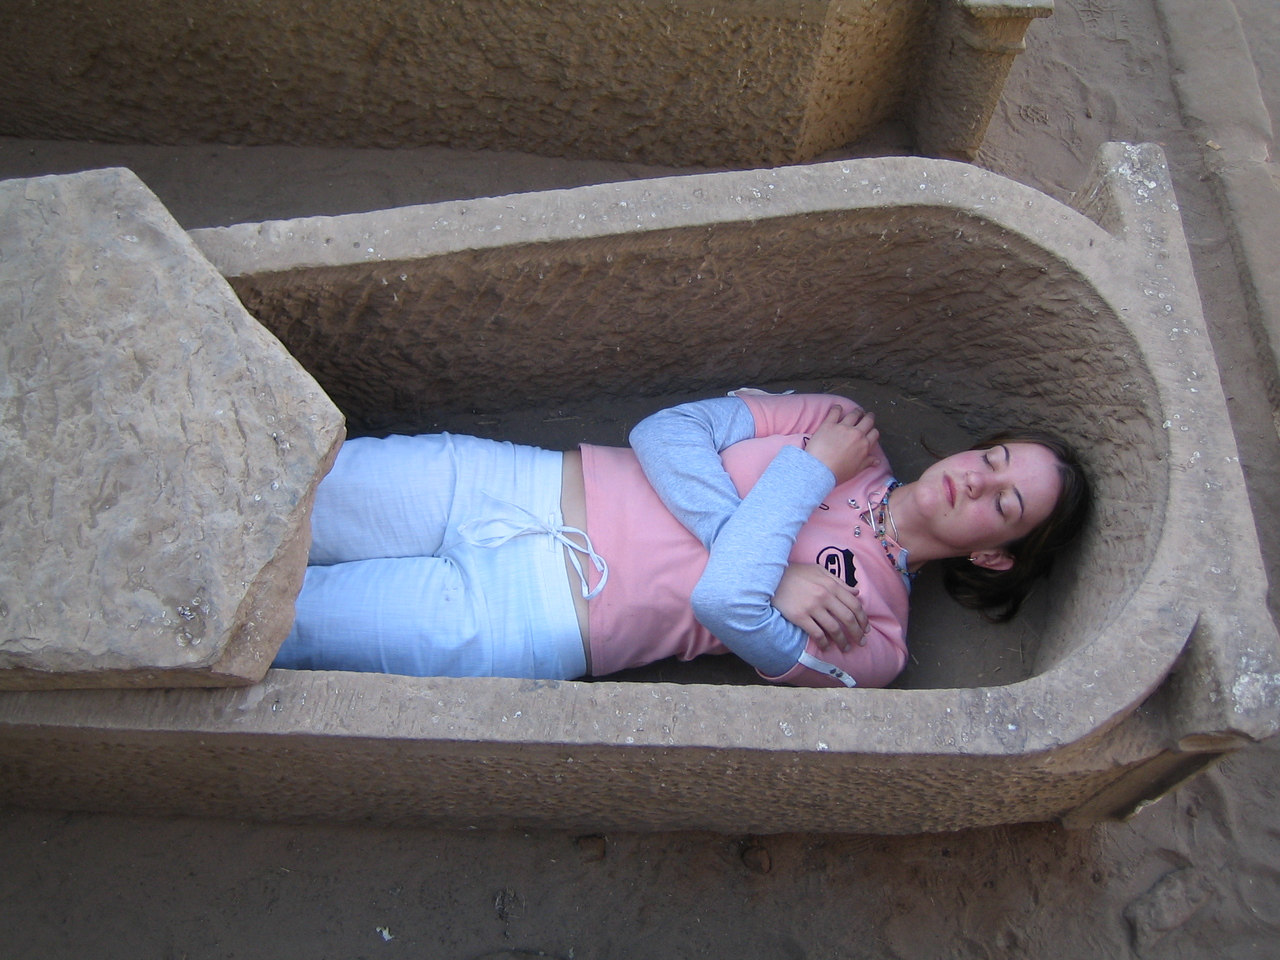 d3) The egyptians reached their peak in mummification techniques.<br /> A mummified Megan.